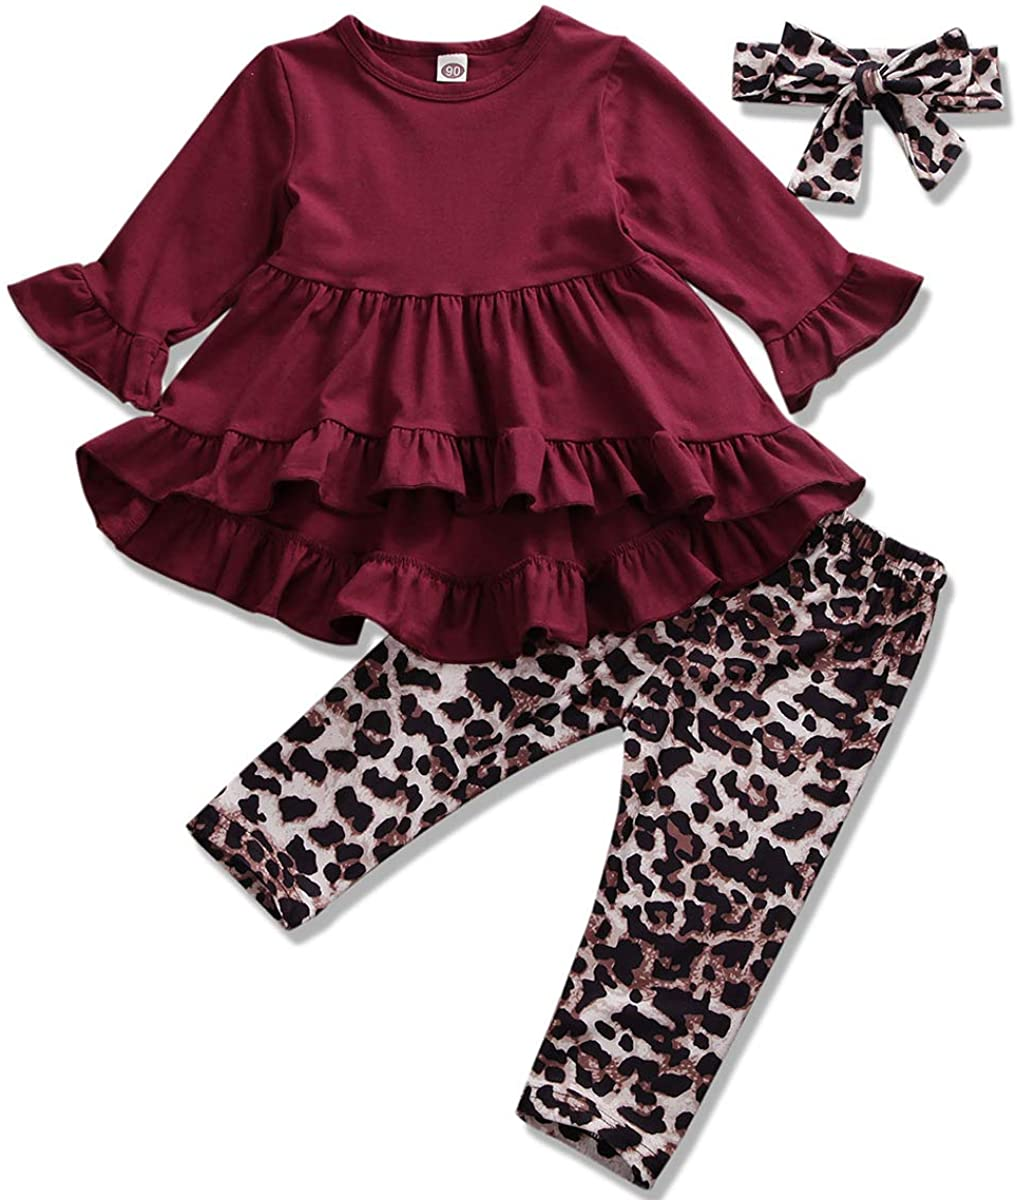 Toddler Baby Girls Clothes Ruffle Flare Tunic Dress Tops Long Sleeve Solid Shirt Floral Leggings Pants Fall Winter Outfits